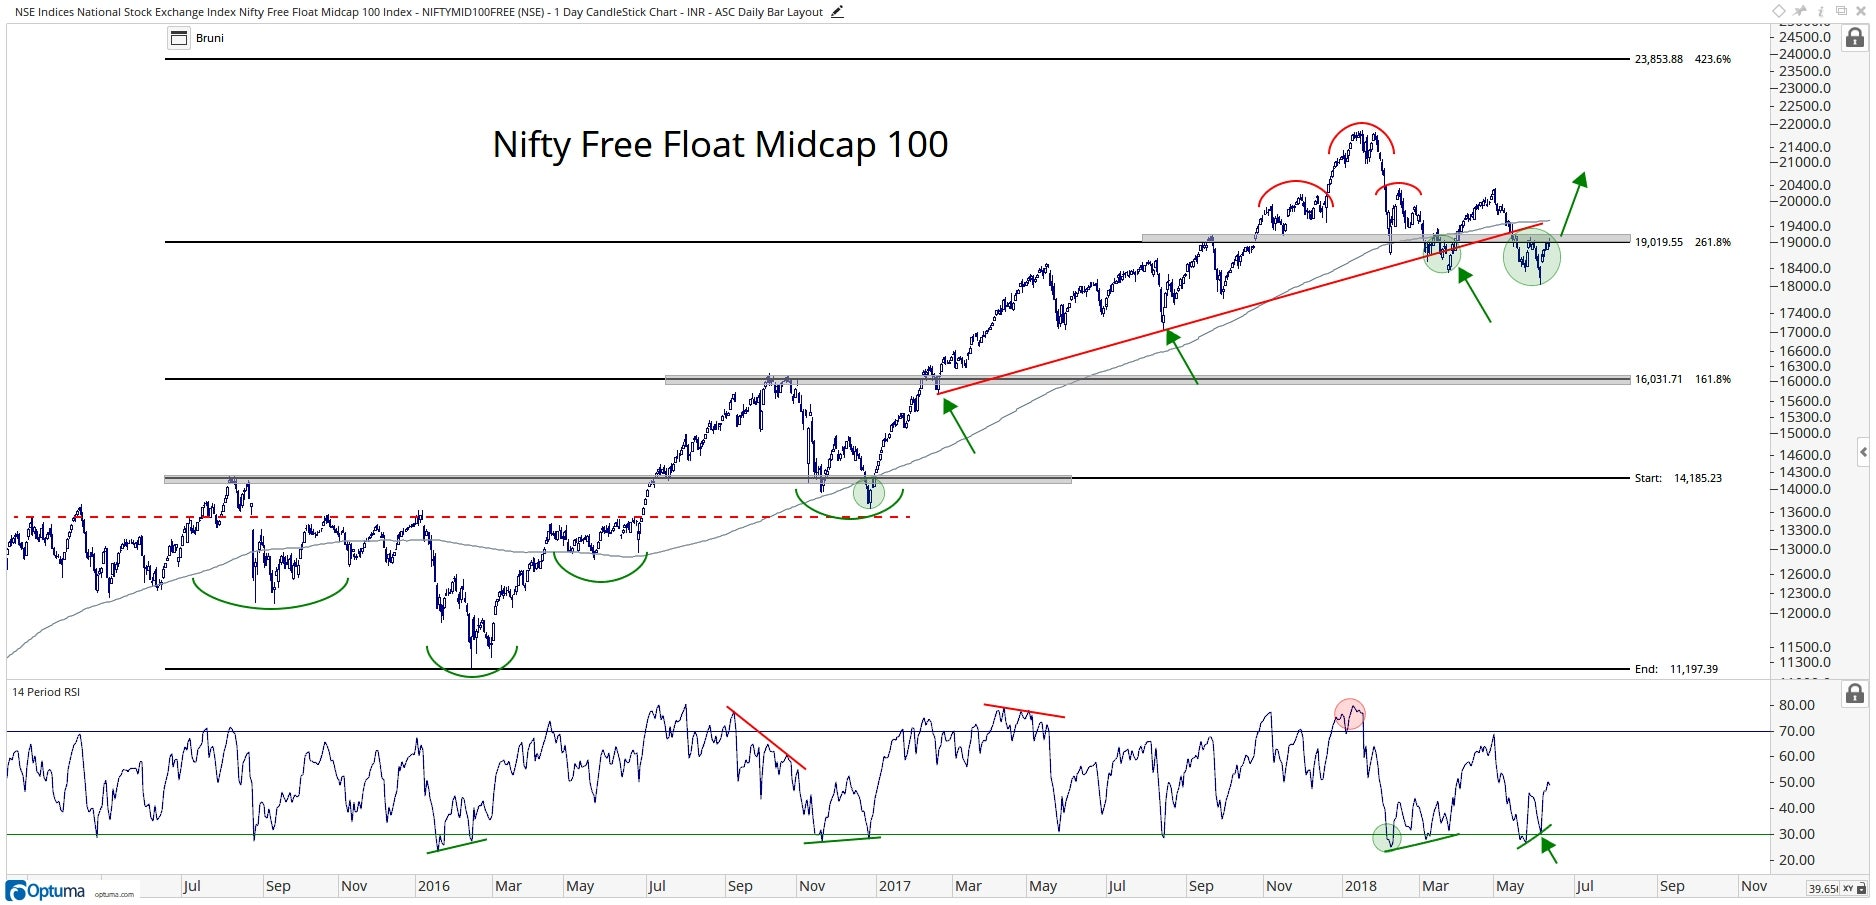 Technical chart showing the performance of the Nifty Free Float Midcap 100 Index